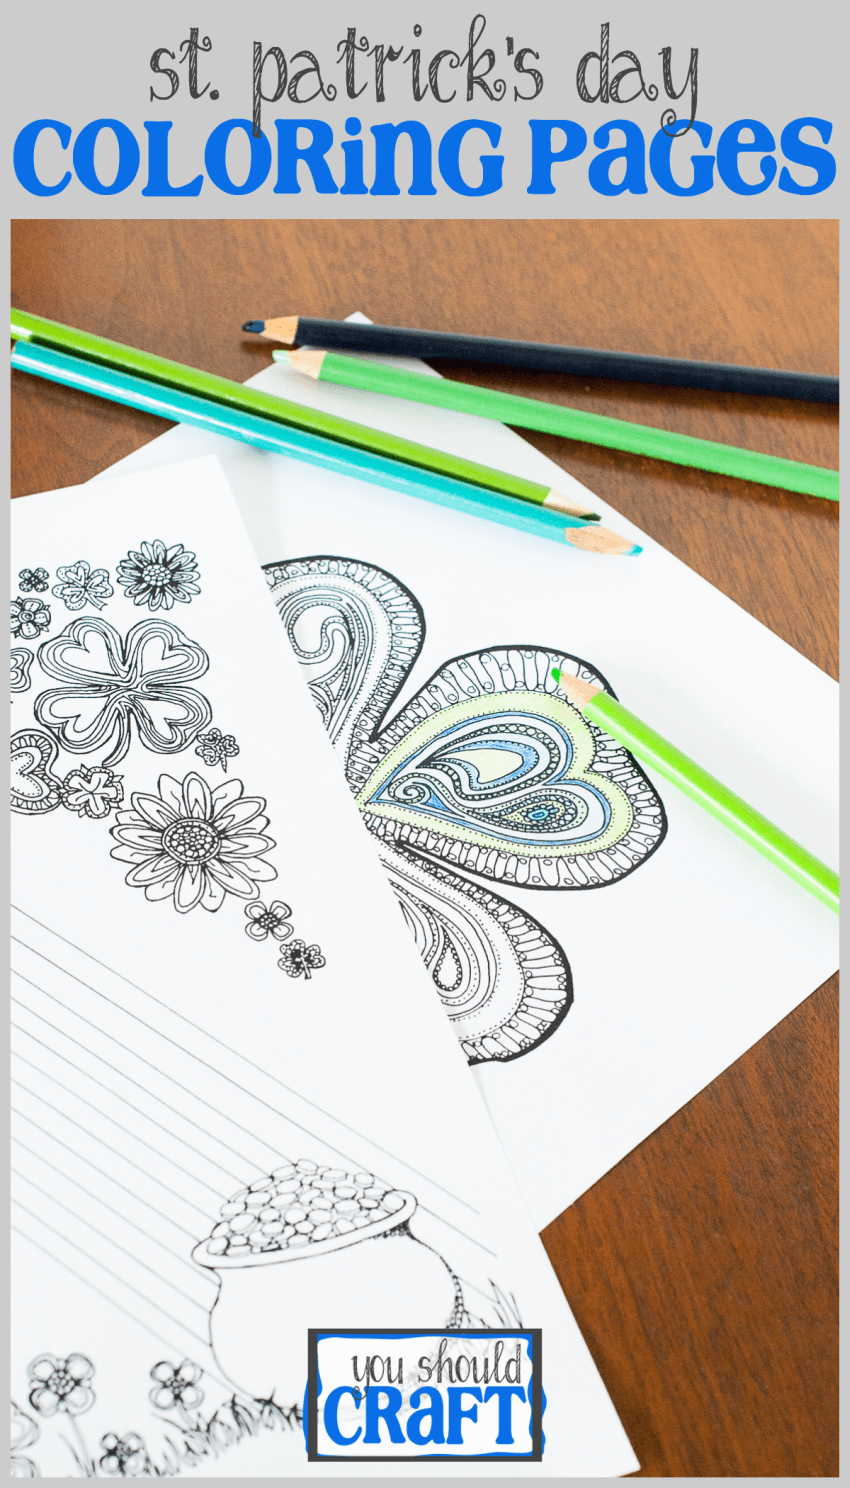 Love to color while listening to podcasts or audiobooks? Download two FREE adult coloring pages for St. Patrick's Day! Free printables via @YouShouldCraft. Click to print now or pin for later!